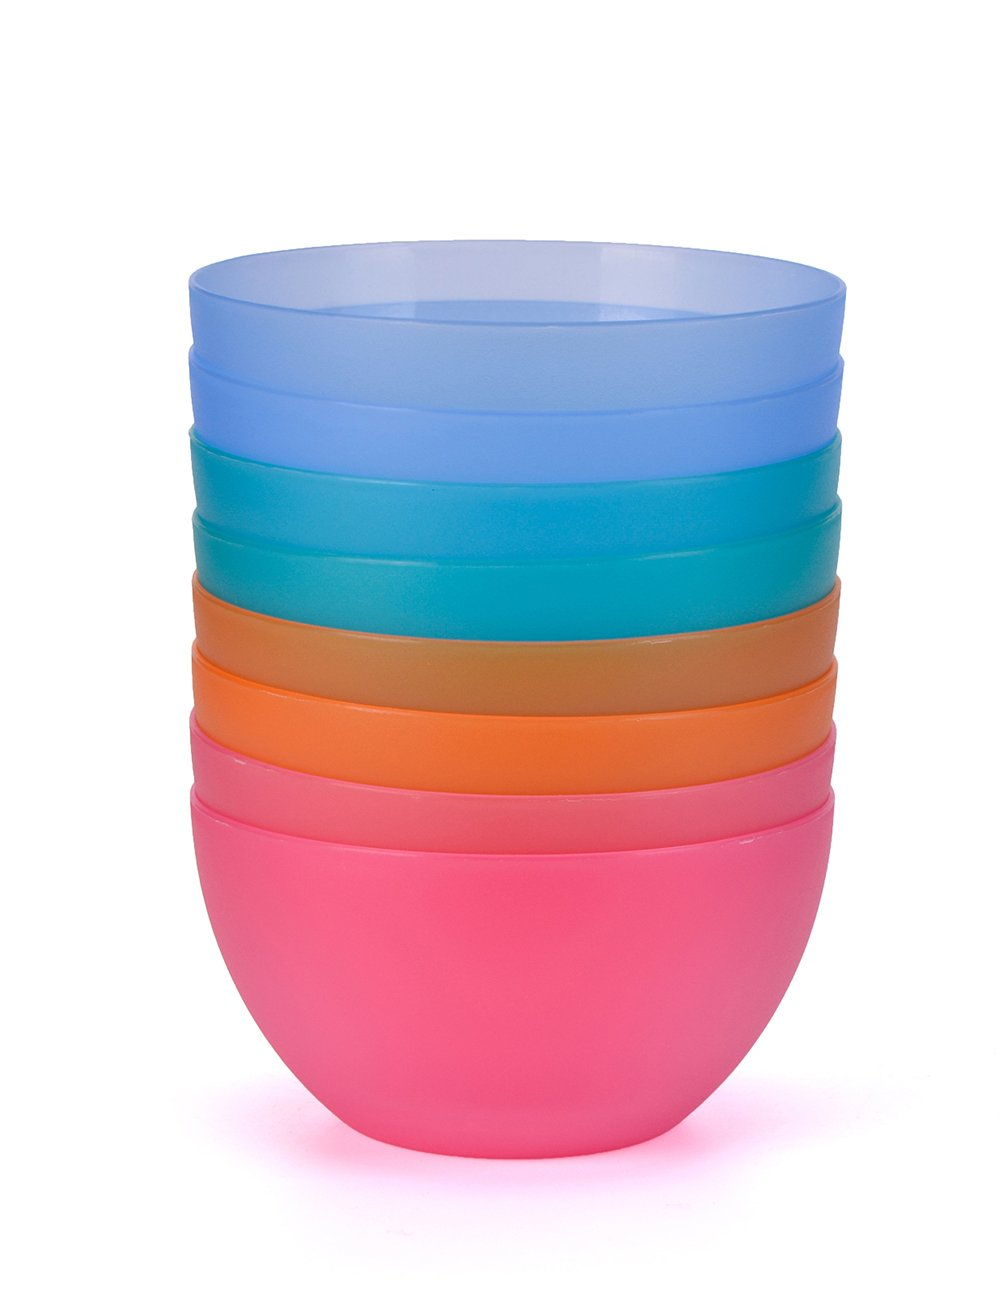 Plastic Bowls set of 8 in 4 Assorted Colors 6 Inch BPA Free For Cereal, Soup, Rice, Salad By AYT